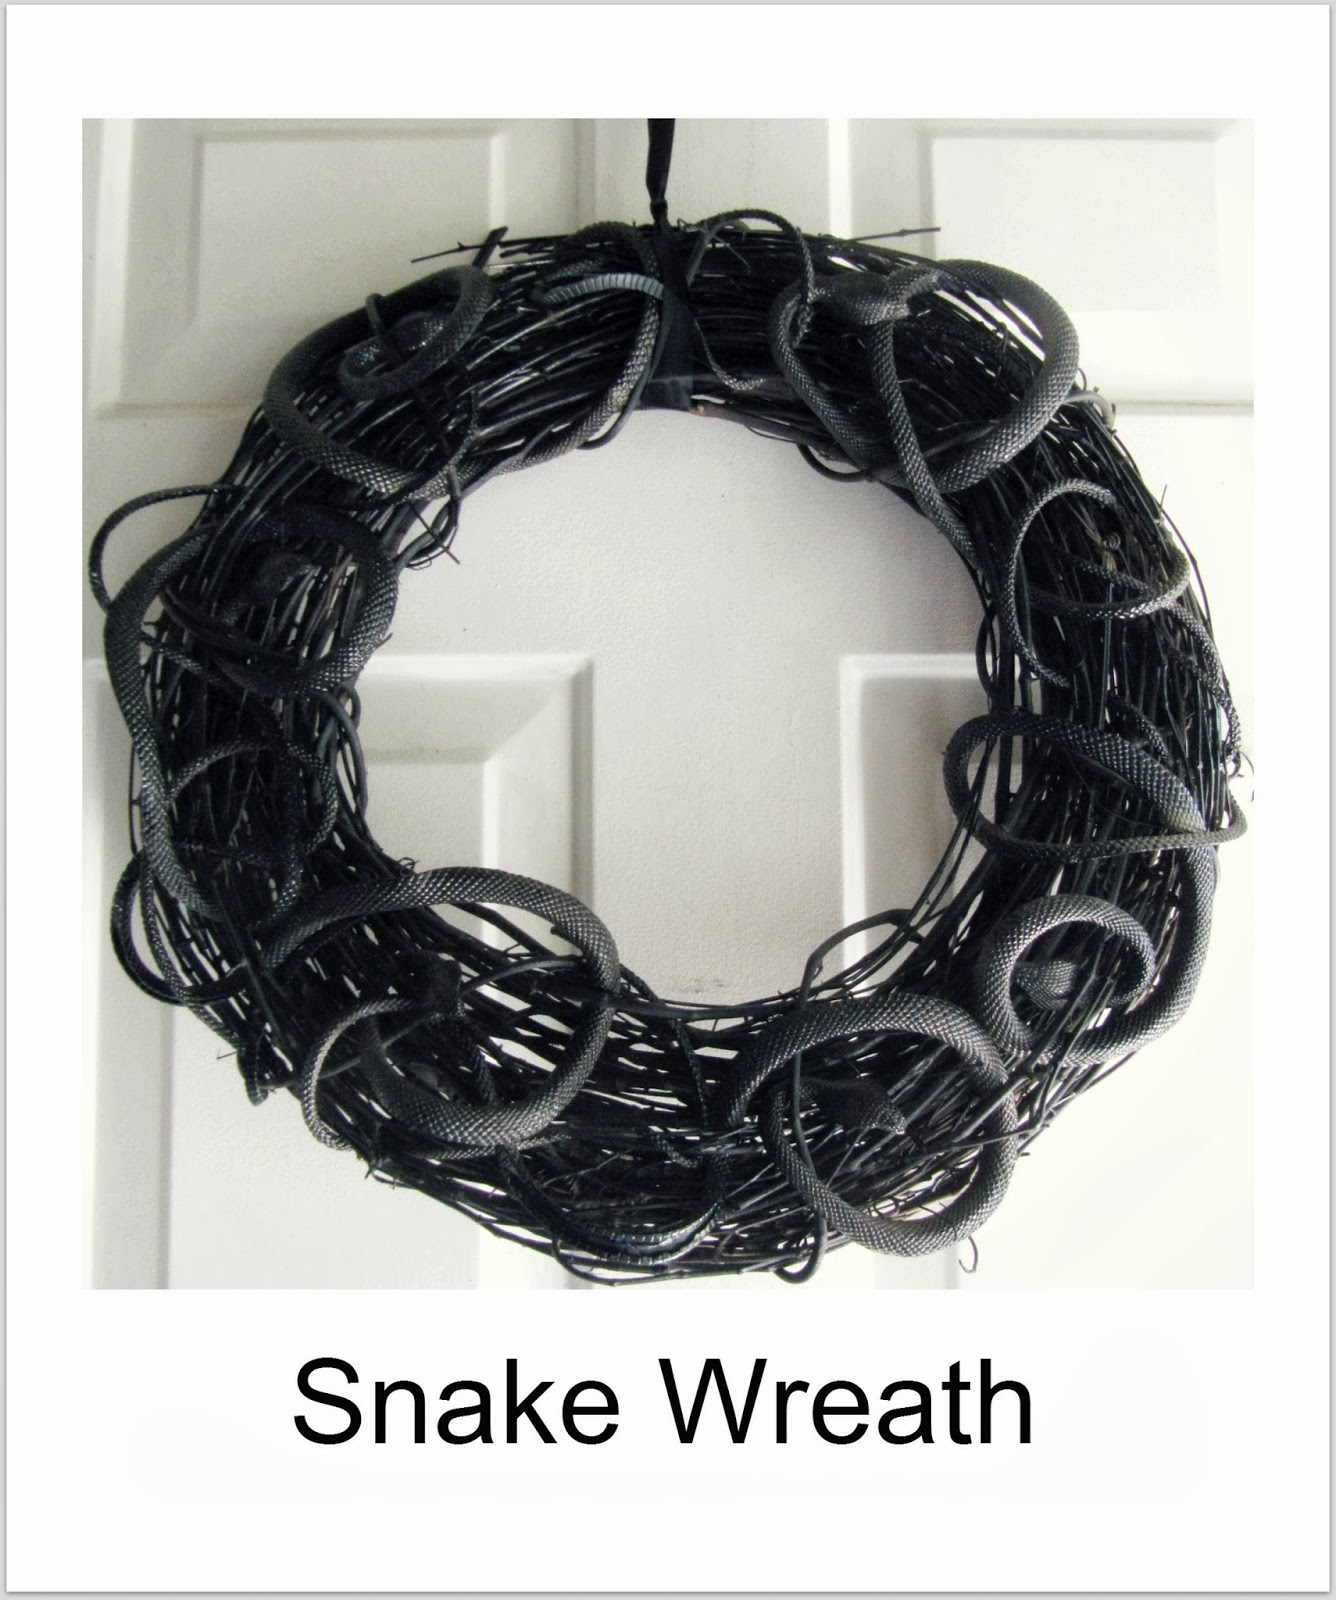 http://thewickerhouse.blogspot.com/2012/10/halloween-snake-wreath.html